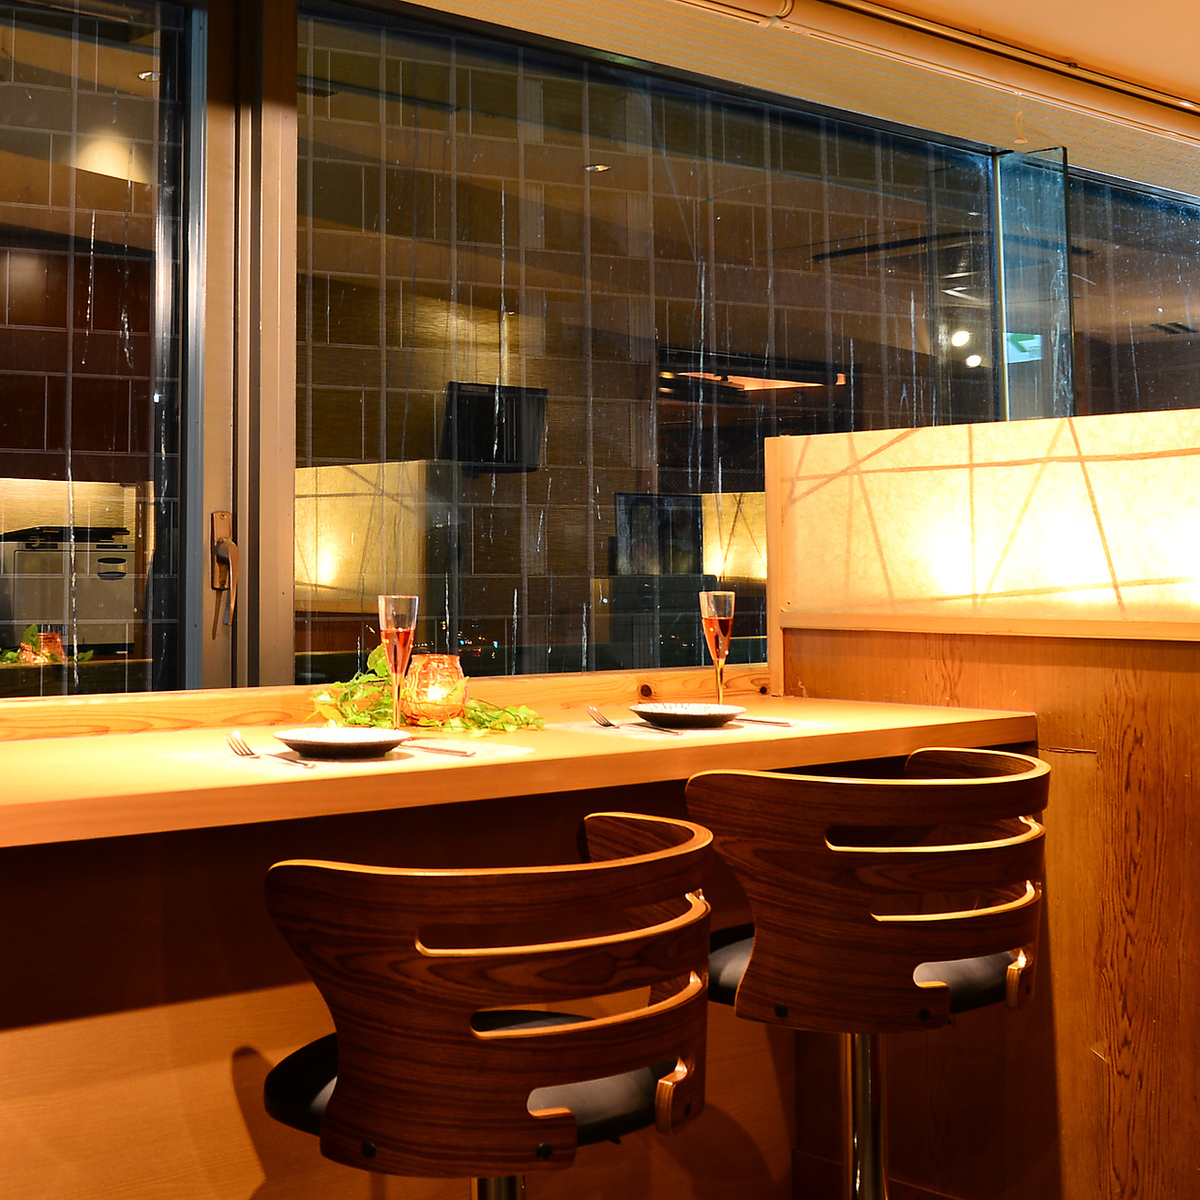 We will produce a private time ♪ In a space where you can relax, the distance to the precious one will be closer and closer ☆ 彡 When you are looking for a pub in Umeda, Japanese Modern Private Room Space, Concluded - YUI - ☆ 彡 ☆ 彡 【Umeda Izakaya Recommended Girls Association Private Room Drink All-you-can-eat All-you-can-eat night view】